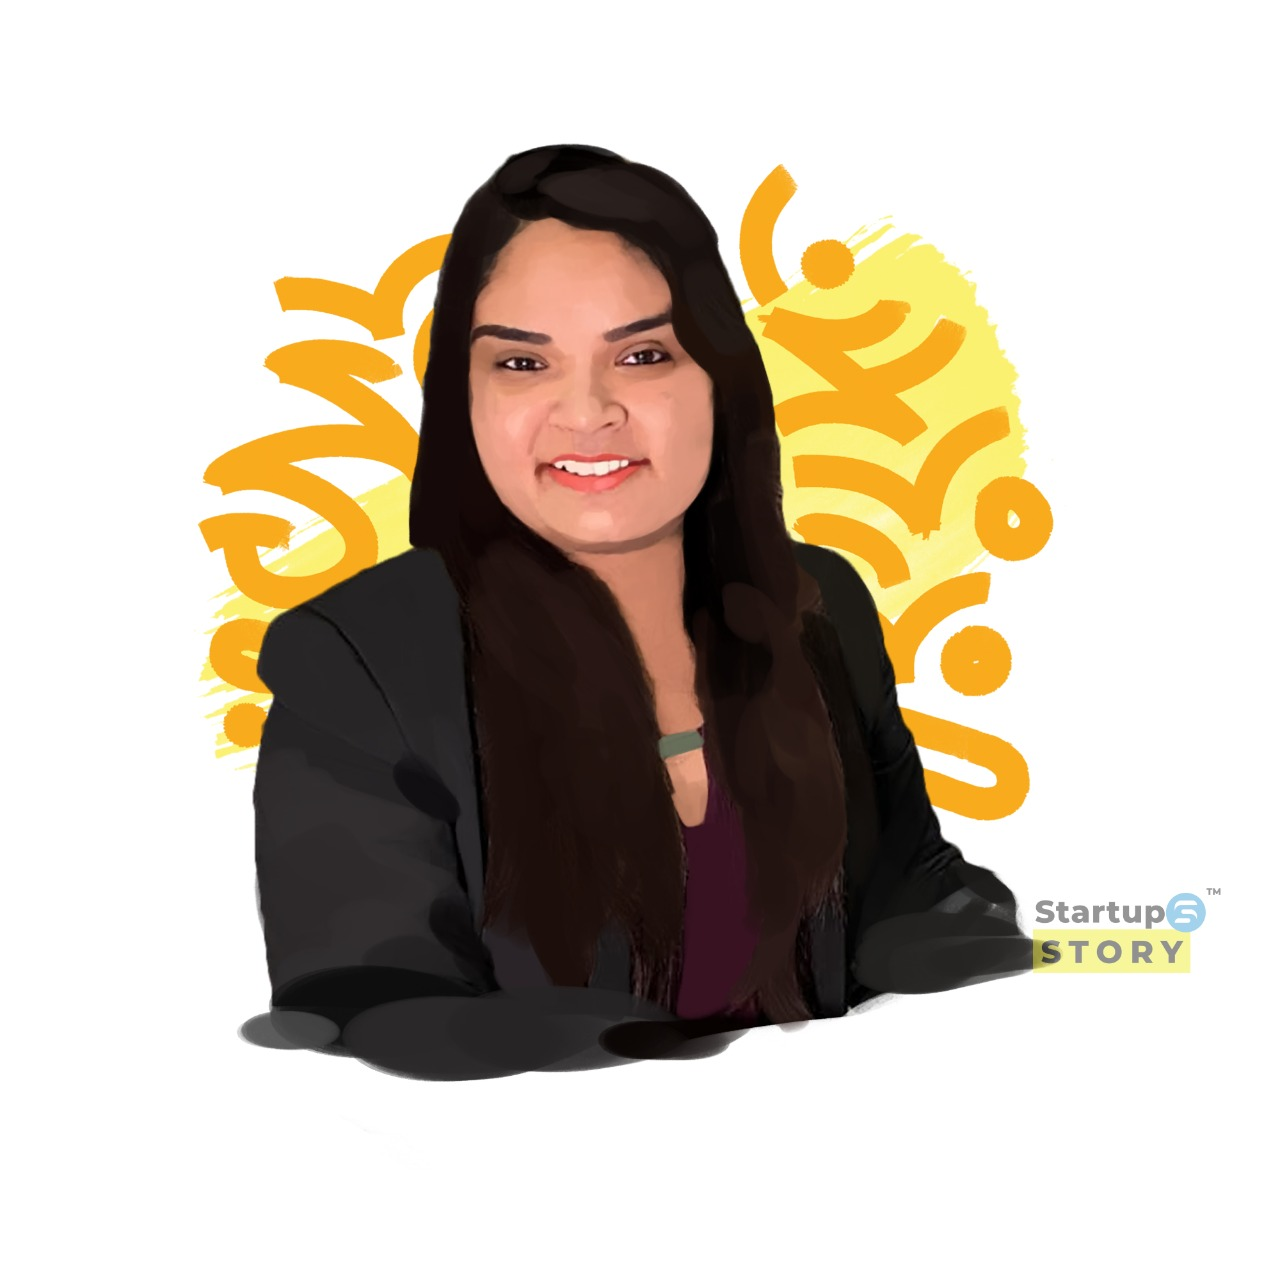 Featured Image Divya Verma taxolawgy startup story media